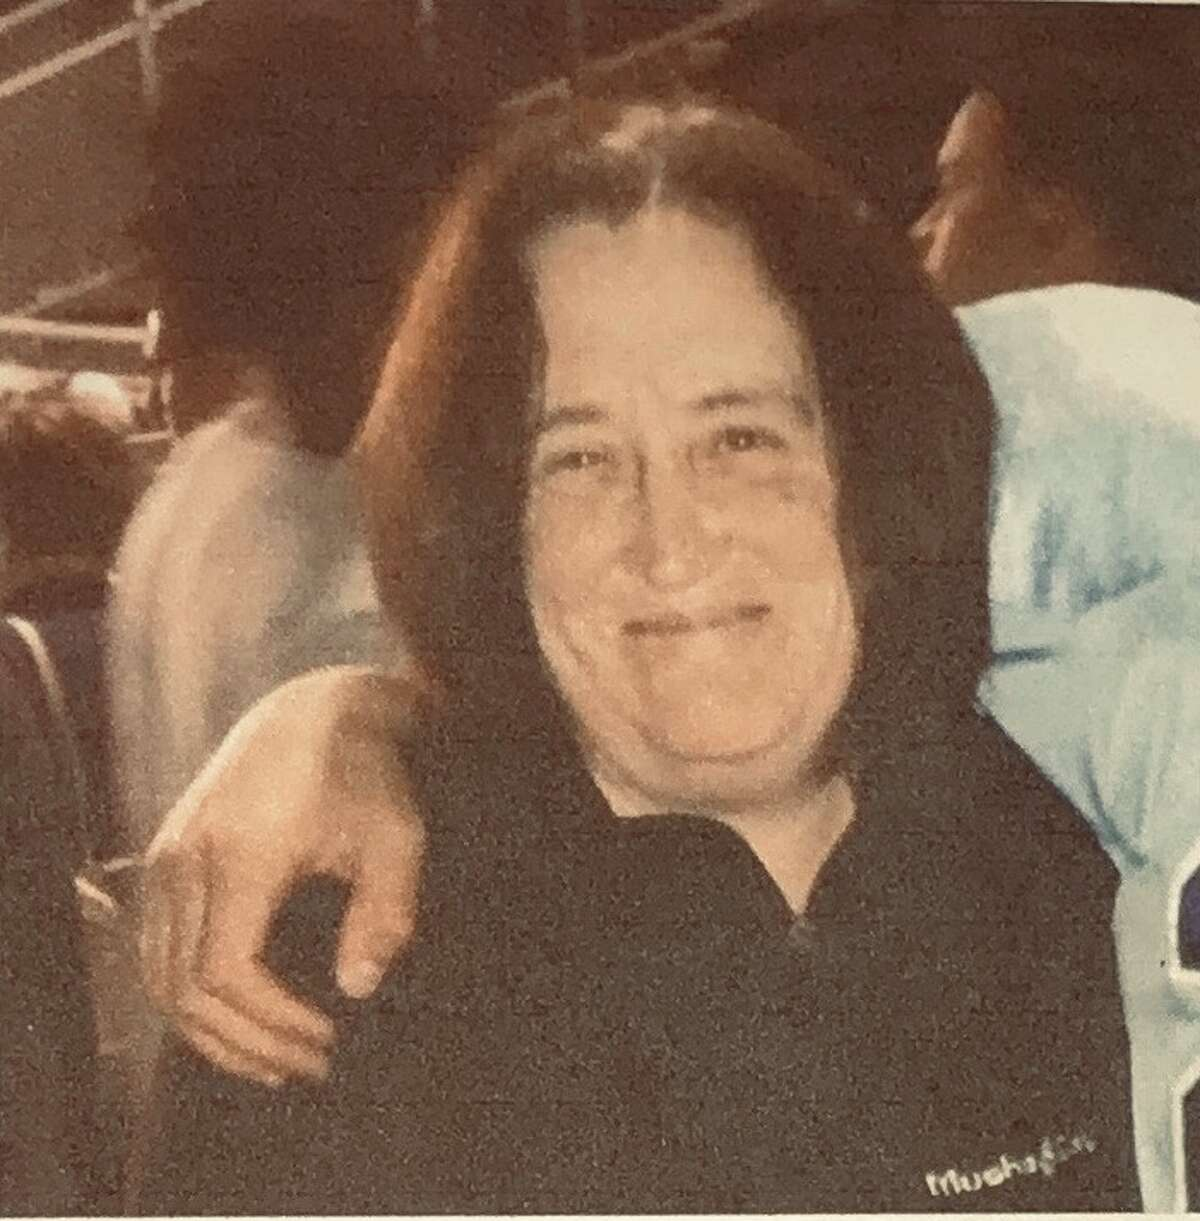 The Bexar County Sheriff's Office is seeking help from the community in locating 55-year-old Deena Martin who has been missing since Thursday January 24, 2019.